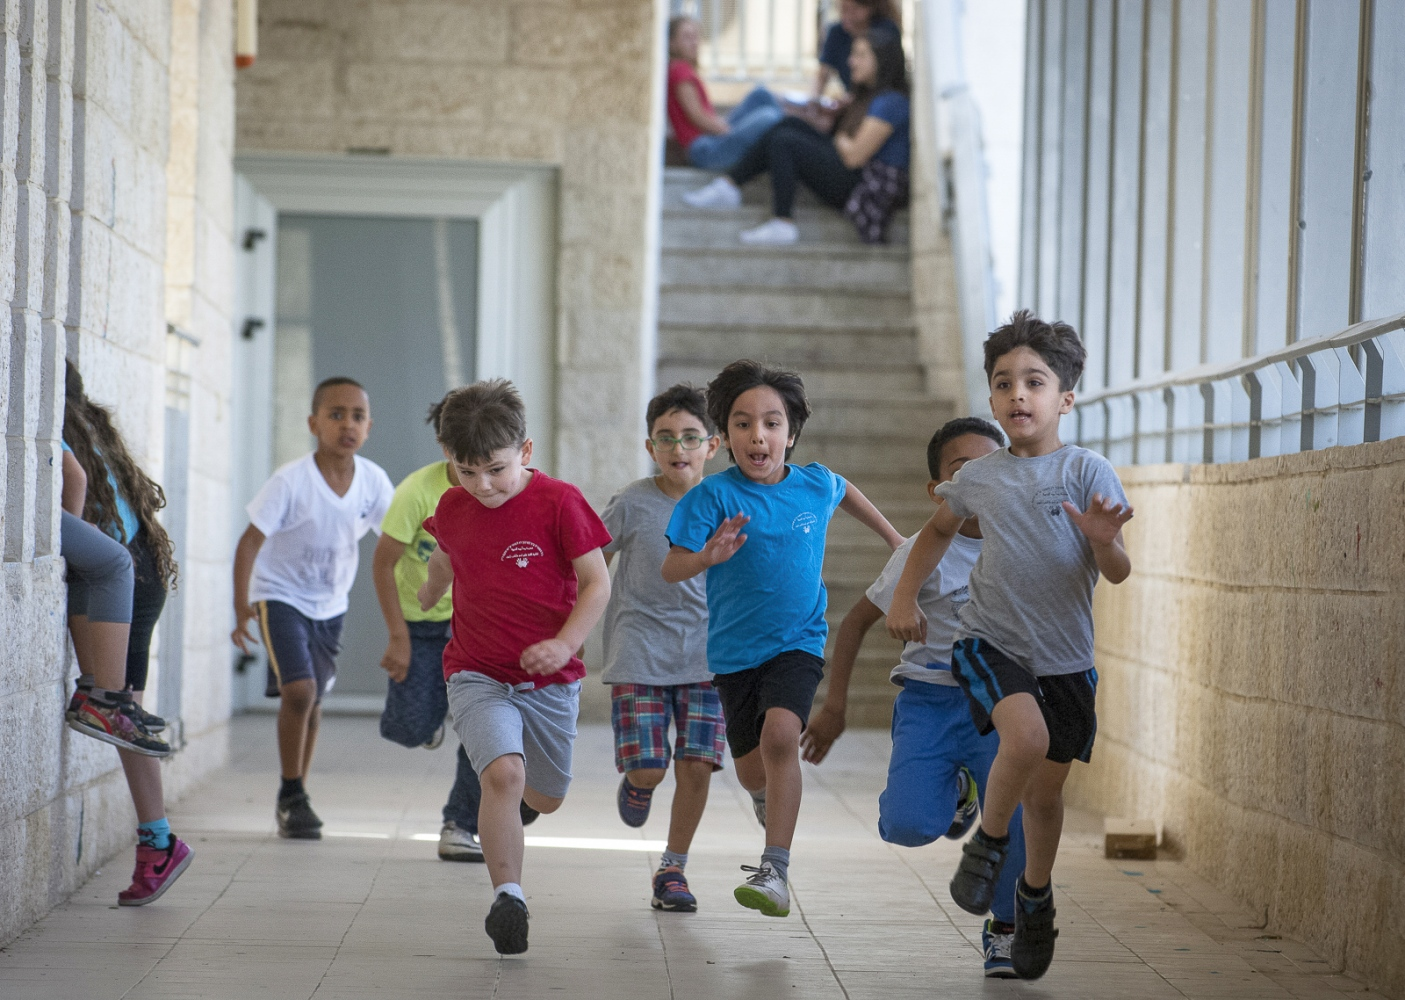 First Grade children playing happily together in the corridors of The Max Rayne Hand in Hand Jerusalem School.